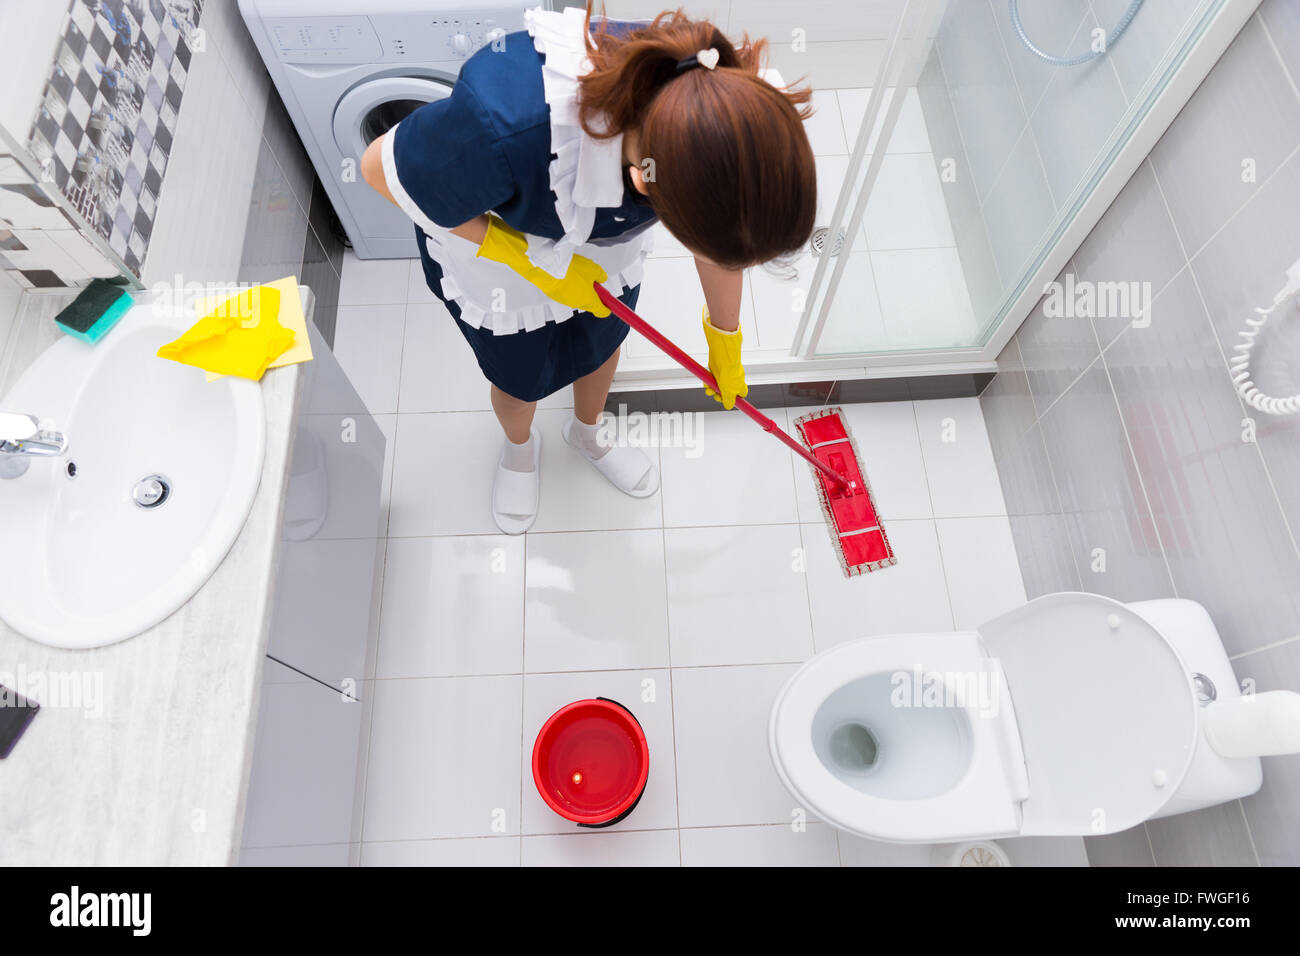 Housekeeper In A Hotel Mopping A Floor In A Clean White